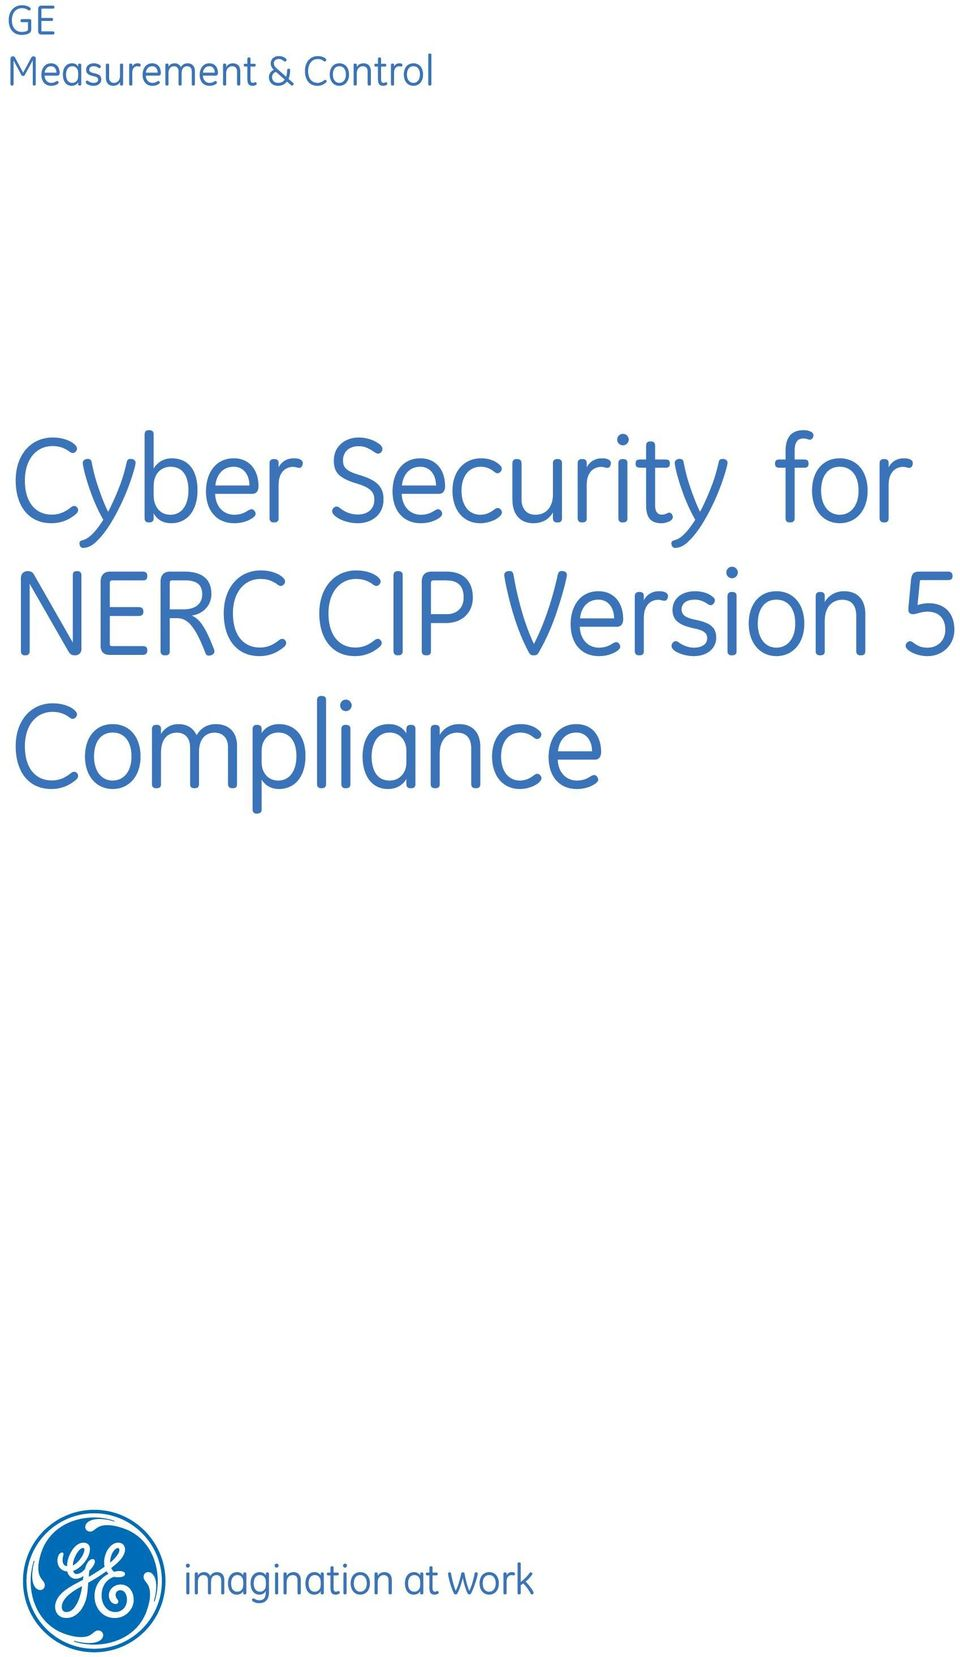 for NERC CIP Version 5